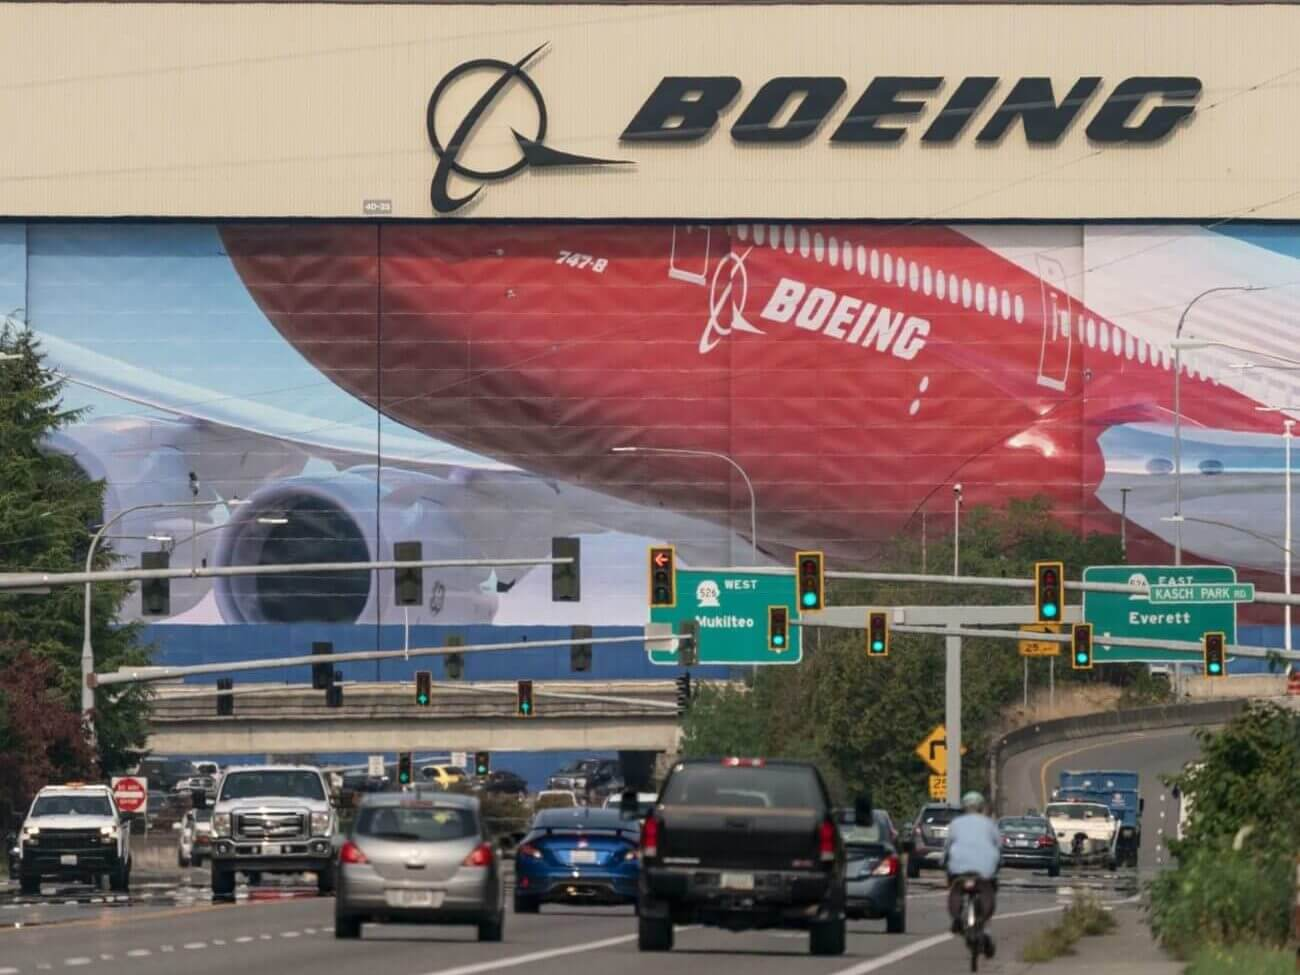 Boeing Is the Most up-to-date Company to Depart a Opposed Alternate Ambiance